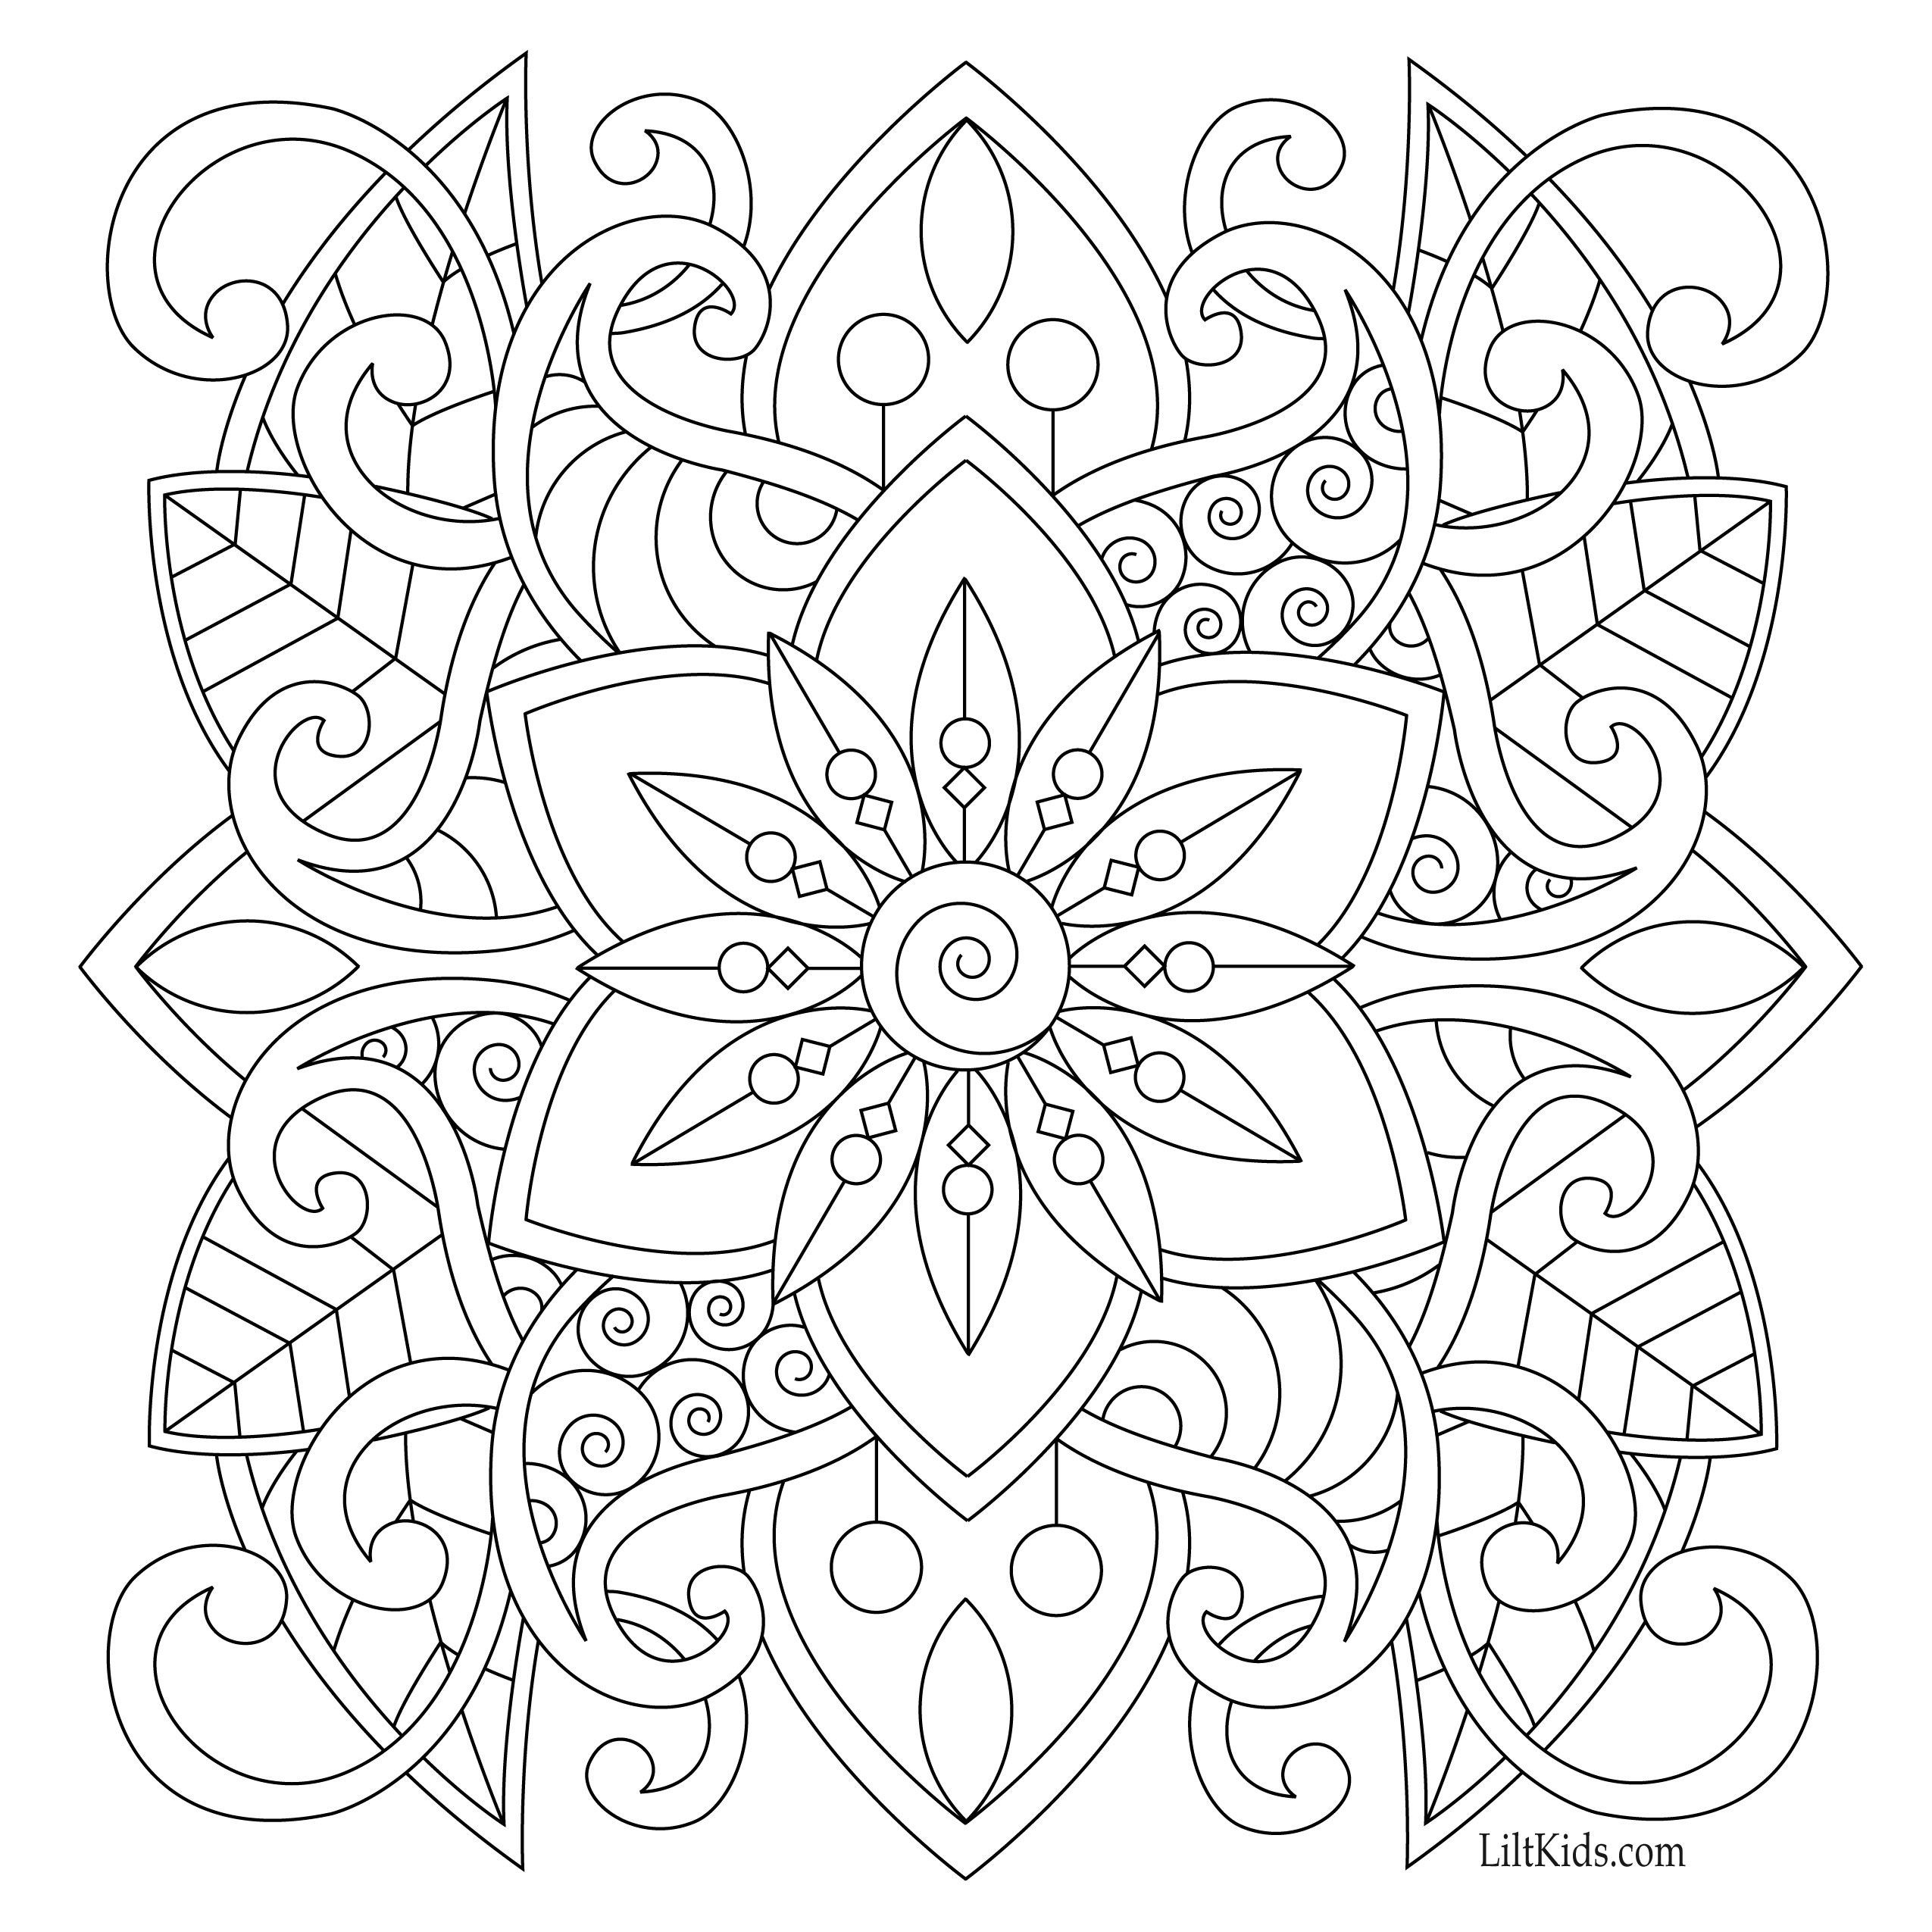 Best ideas about Easy Adult Coloring Books . Save or Pin Free easy mandala for beginners adult coloring book image Now.